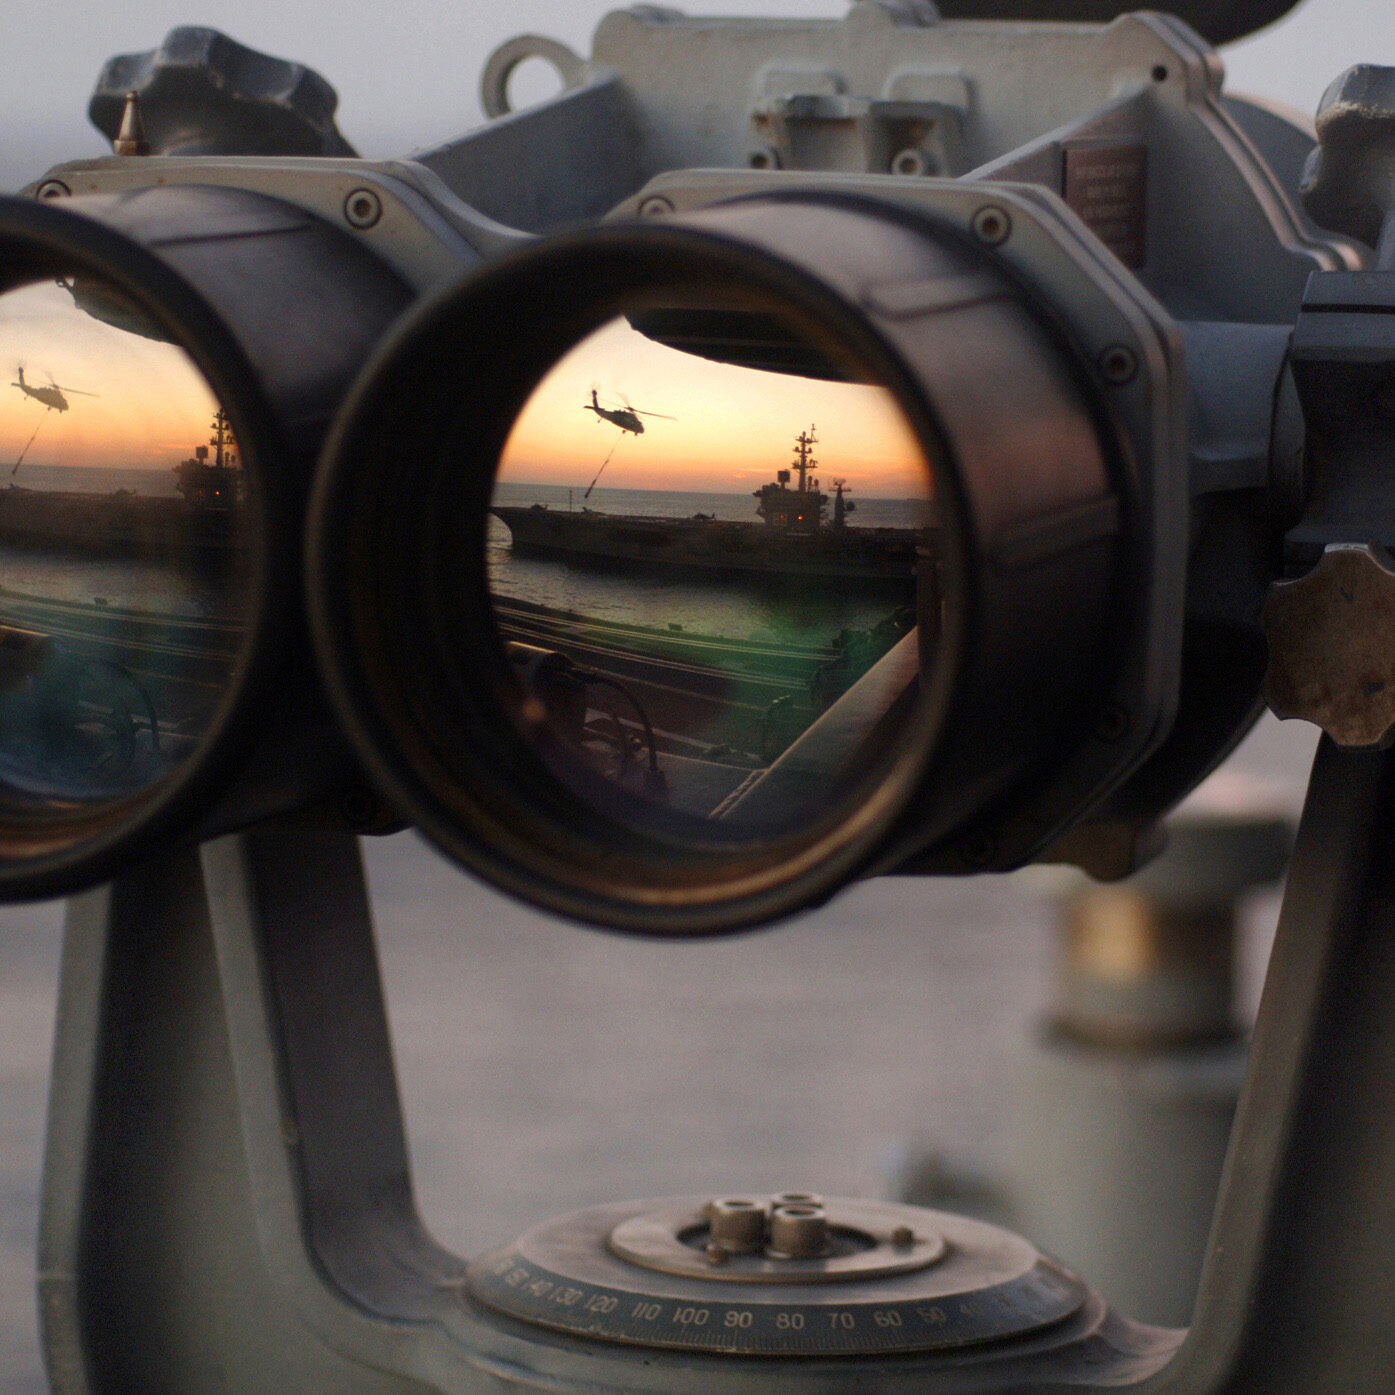 "051104-N-2984R-004 Onboard USS Harry S. Truman The sun sets over a set of ""Big Eyes"" binoculars on the signal bridge of the Nimitz-class aircraft carrier USS Harry S. Truman (CVN 75), while an MH-60 Knighthawk assigned to the ""Bay Raiders"" of Helicopter Combat Support Squadron (HSC) 28 airlifts several replenishment slings to USS Dwight D. Eisenhower (CVN 69).  USS Harry S. Truman is currently underway off the coast of the Eastern United States conducting replenishments at sea with USNS Arctic (T-AOE 8) and weapons offload operations with USS Enterprise (CVN 65) and USS Dwight D. Eisenhower (CVN 69). Harry S. Truman is scheduled to enter its Docked-Planned Incremental Availability at the beginning of 2006. US Navy photo by Photographer's Mate Airman Ricardo J. Reyes.  (Released by HST Public Affairs.)"